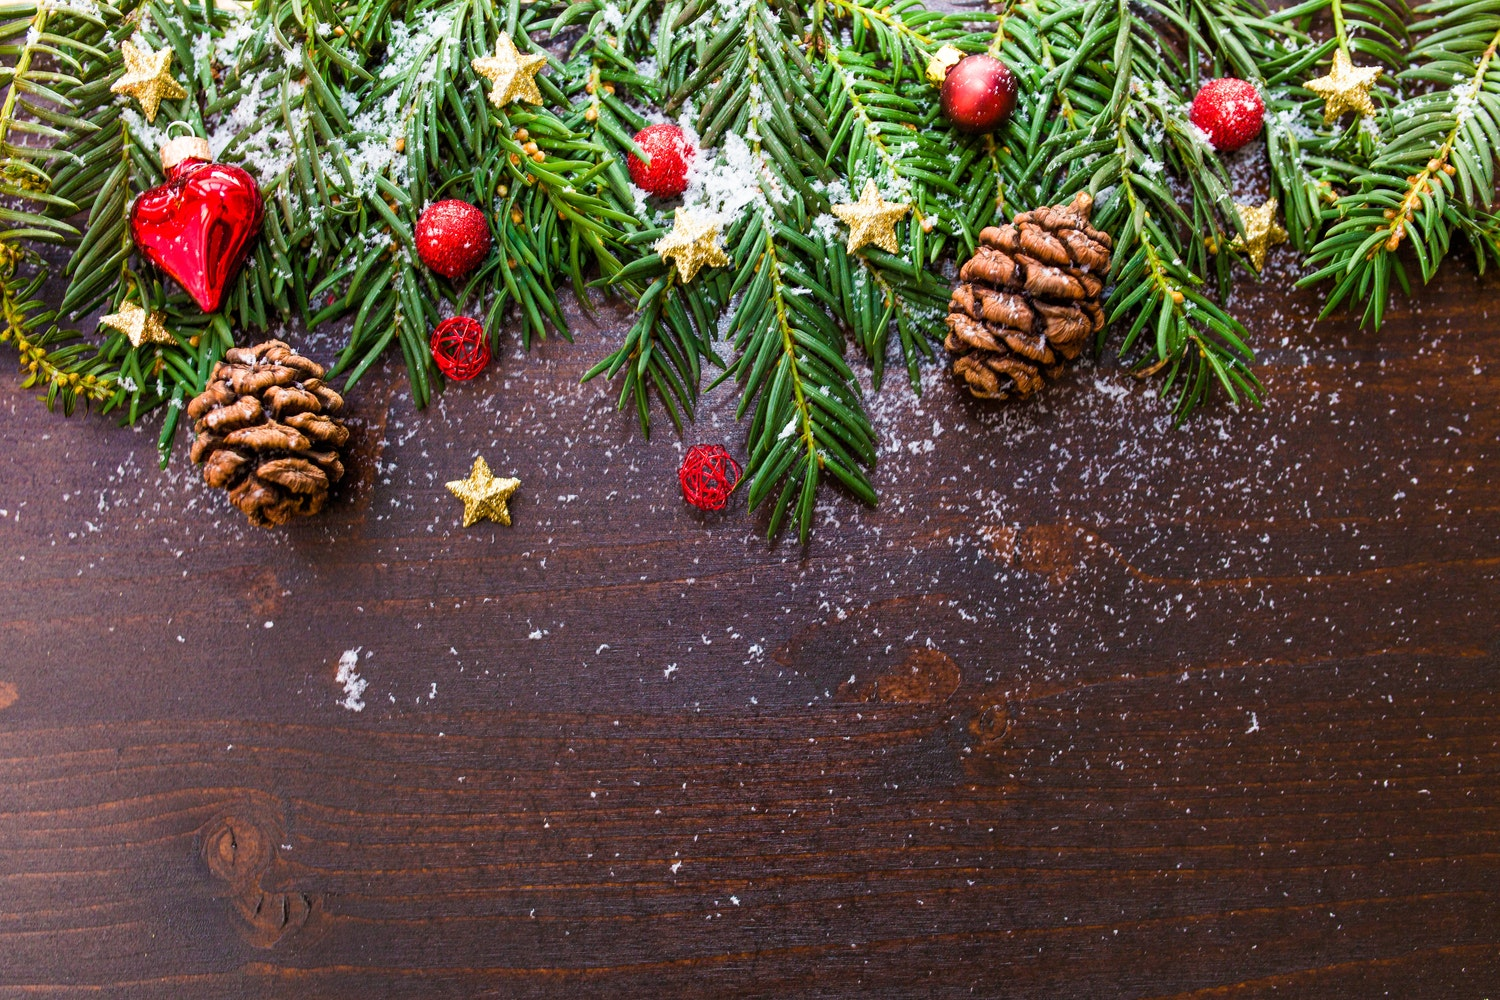 christmas images 183 pexels 183 free stock photos